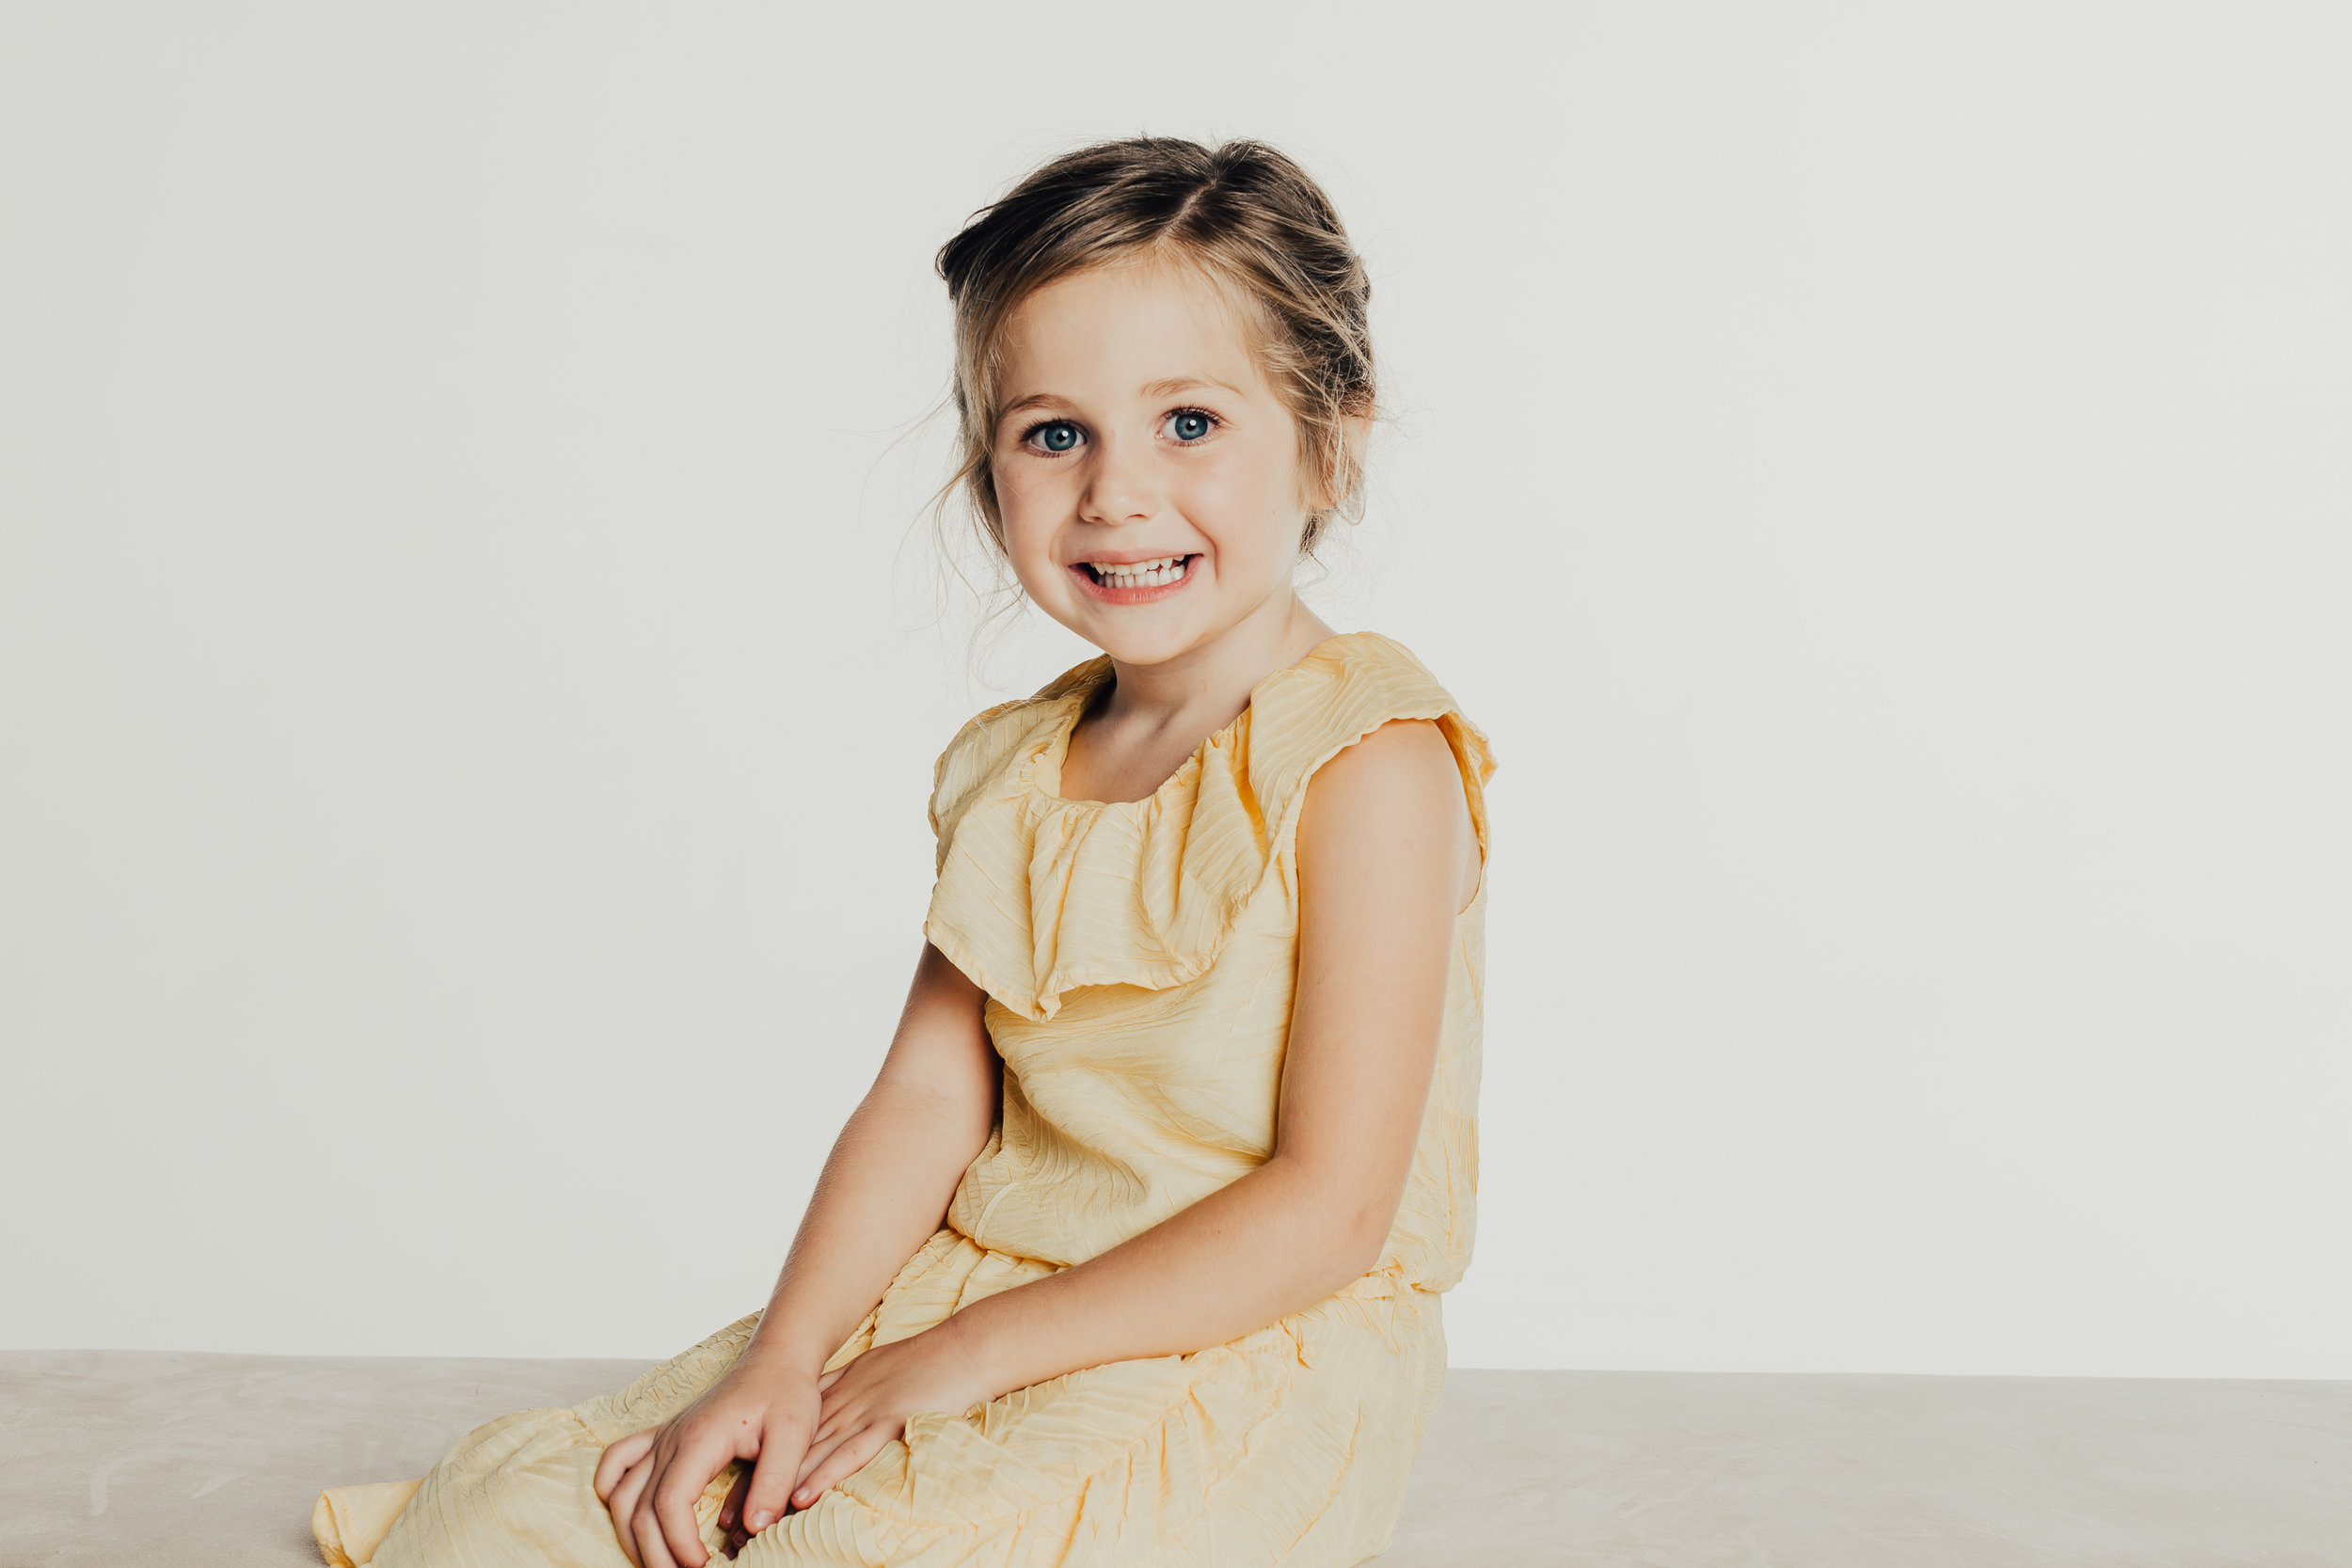 Gianna Keiko Atlanta Family Studio Portrait Photographer-26.jpg